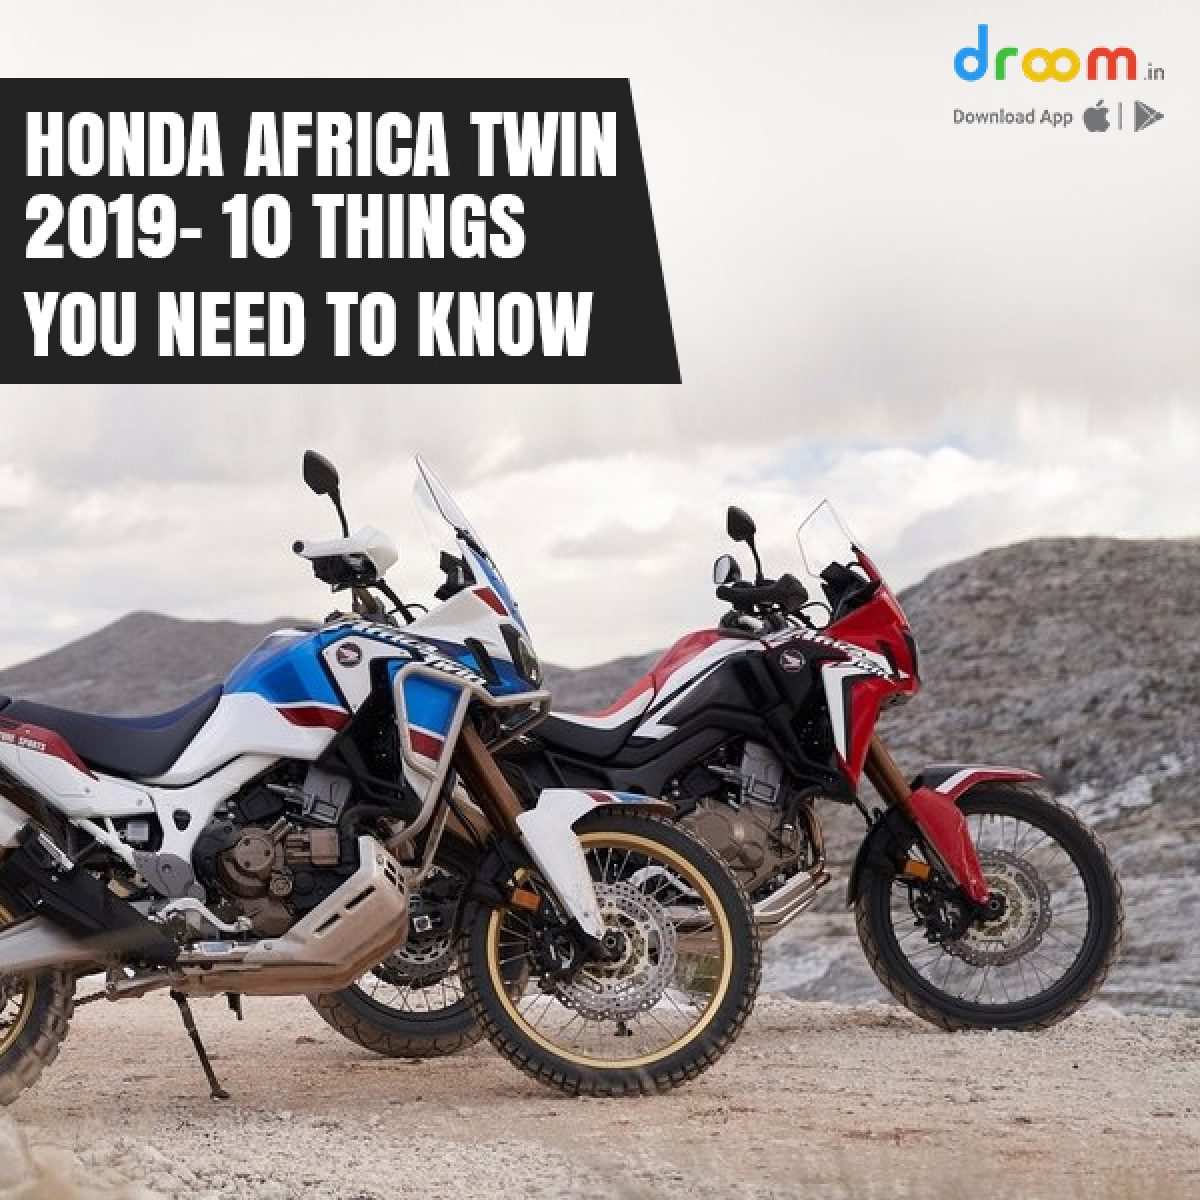 10 Things You Need To Know About Honda Africa Twin 2019 Droom